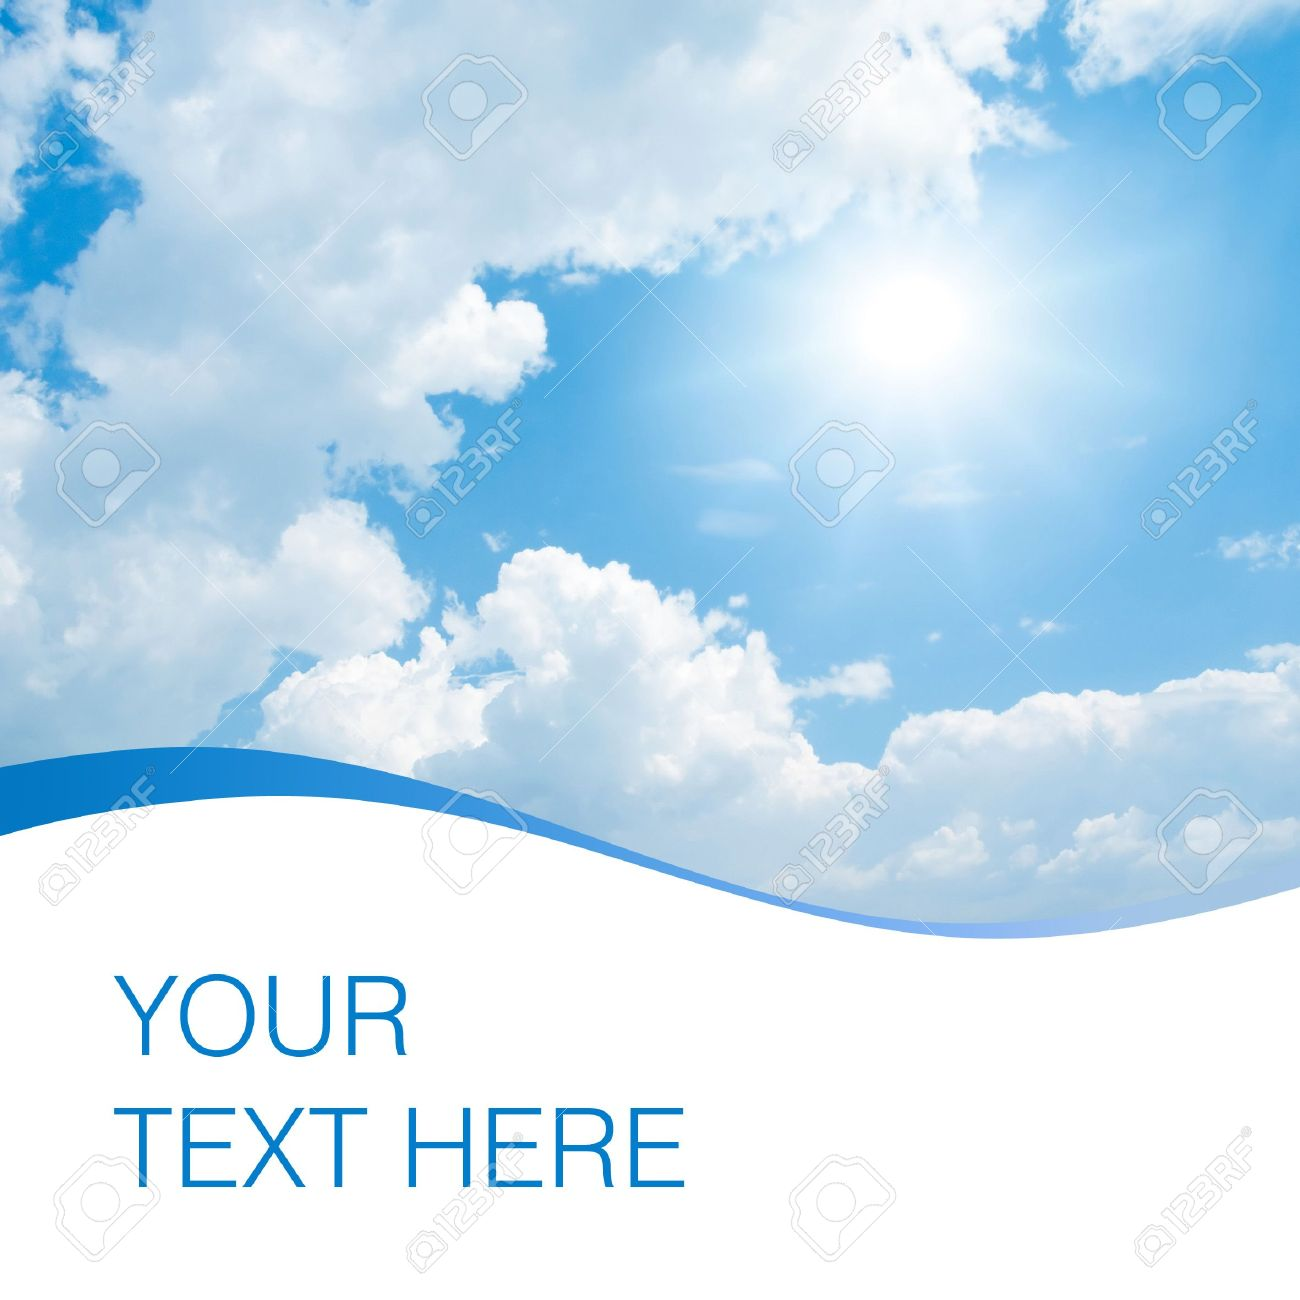 Sun, blue sky and white clouds with space for text. Stock Photo - 7623291